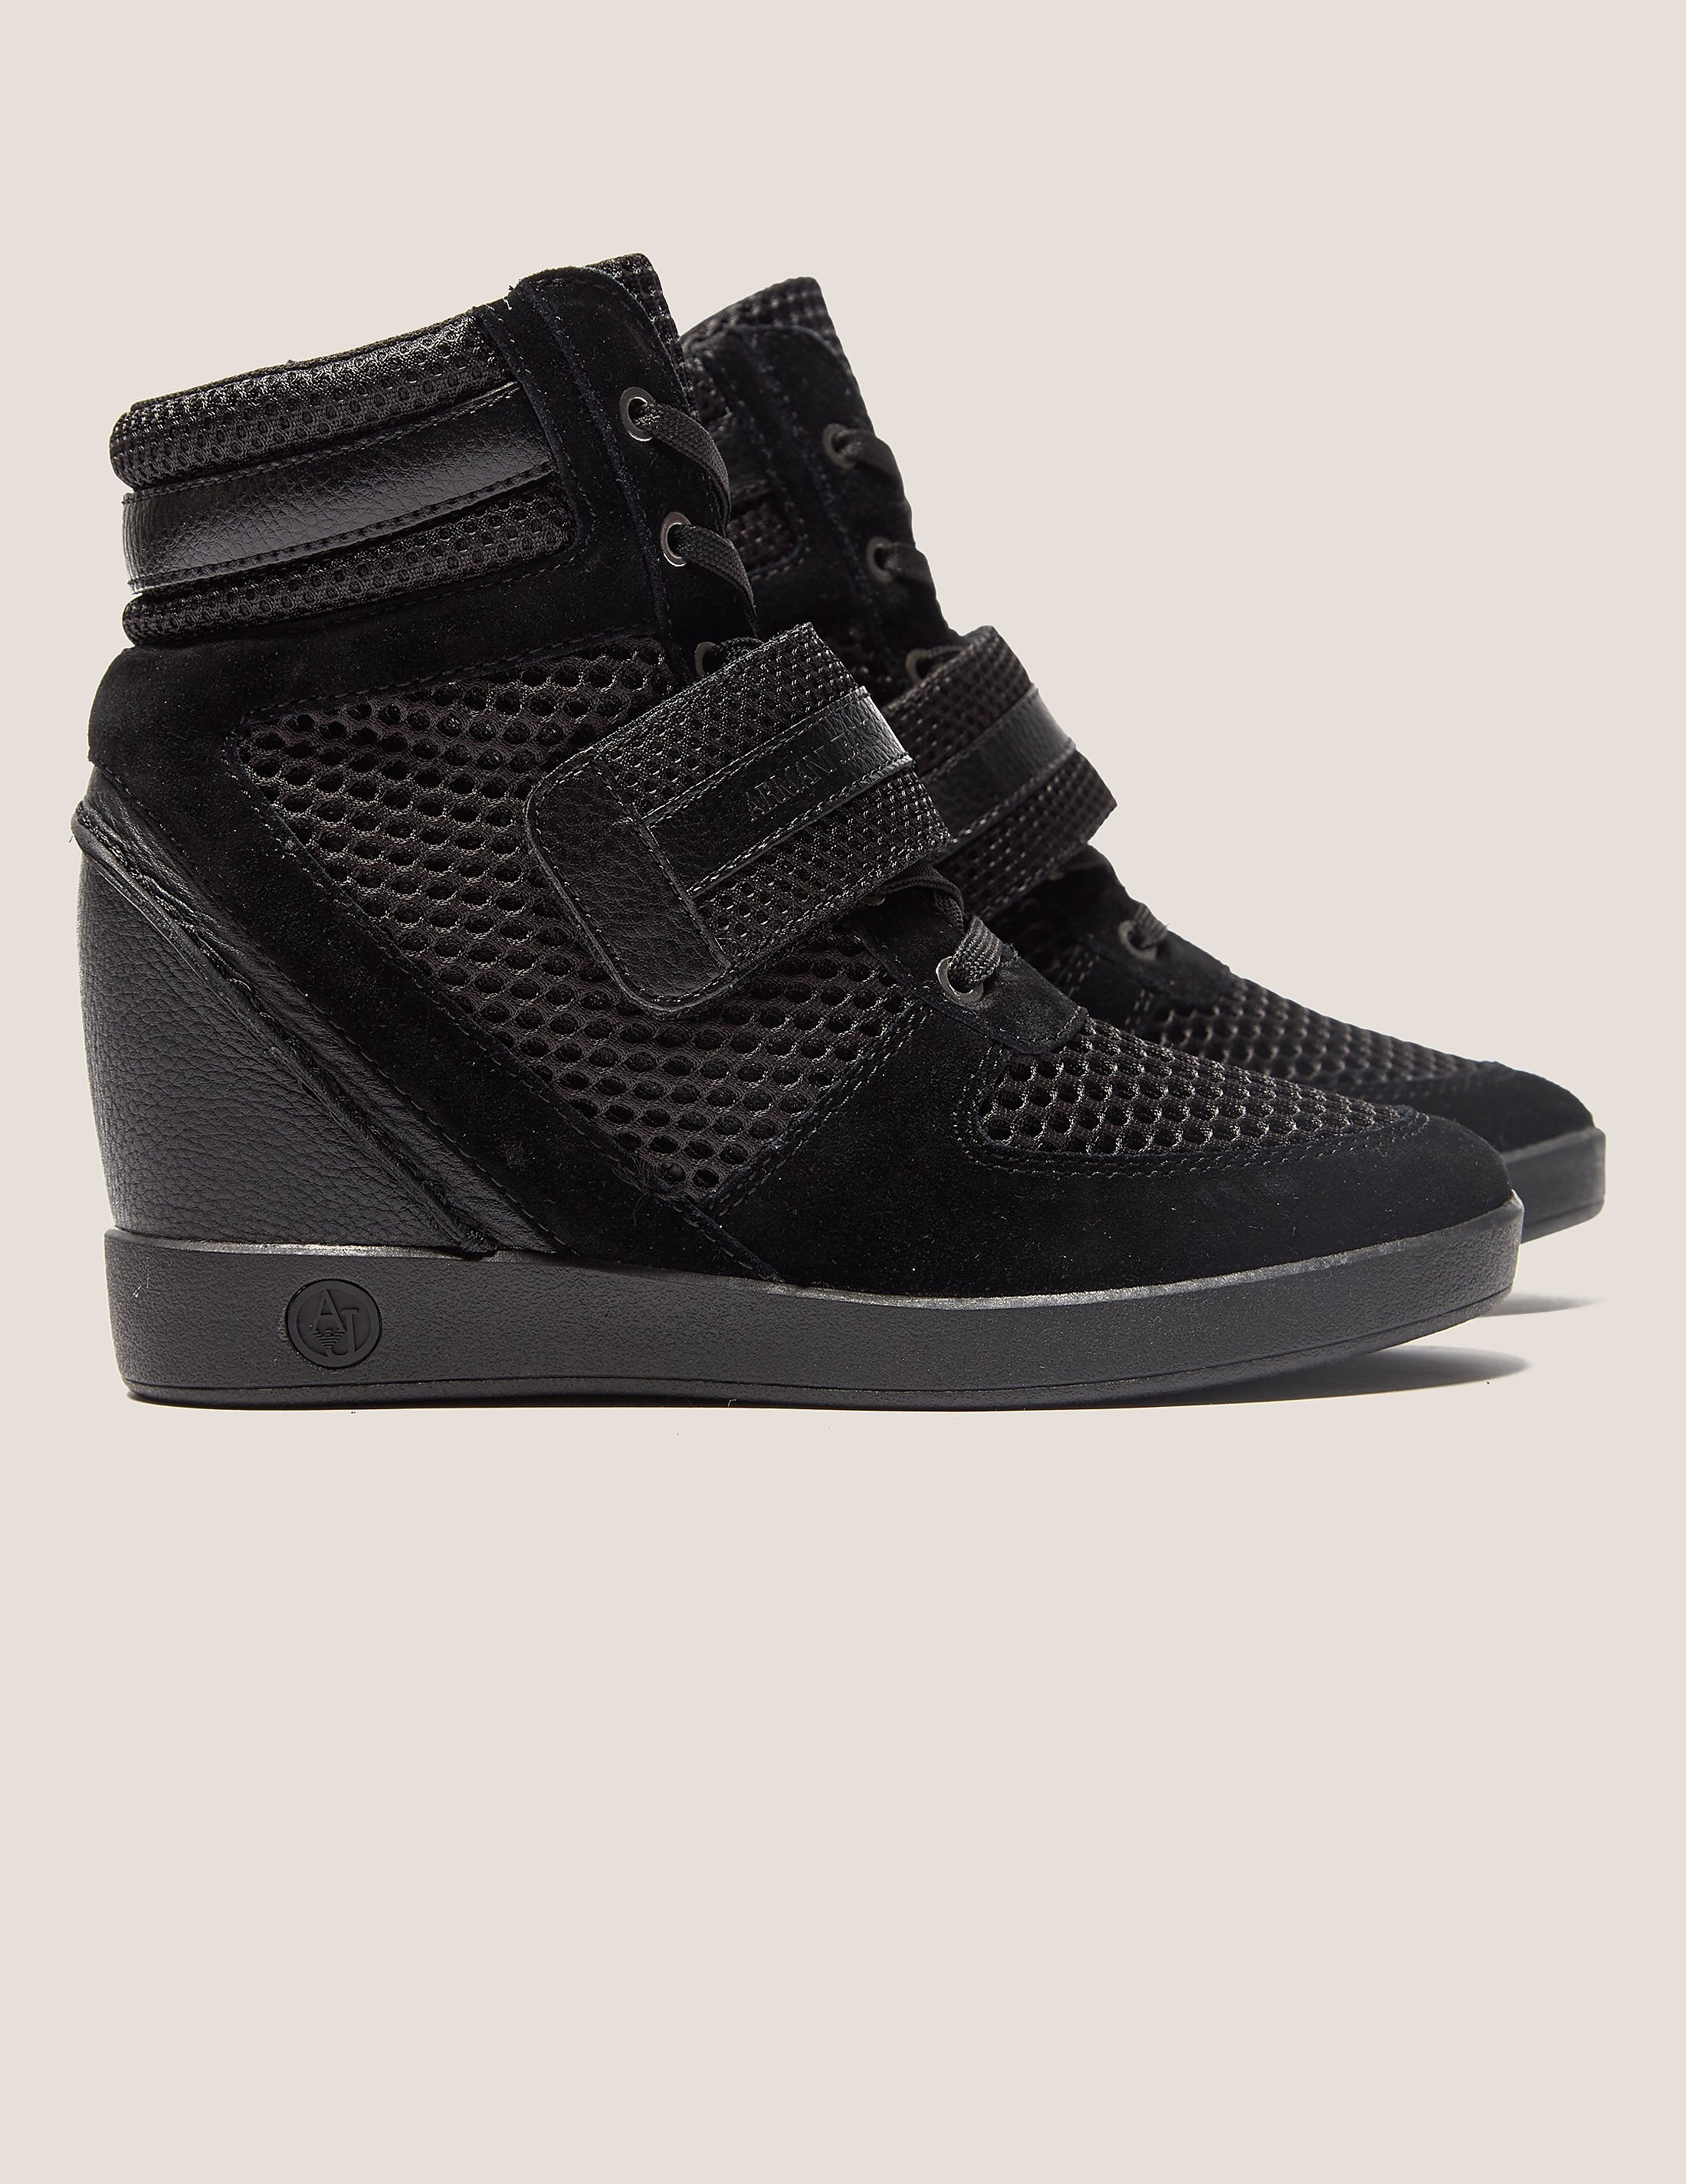 Armani Jeans High Top Wedge Sneakers